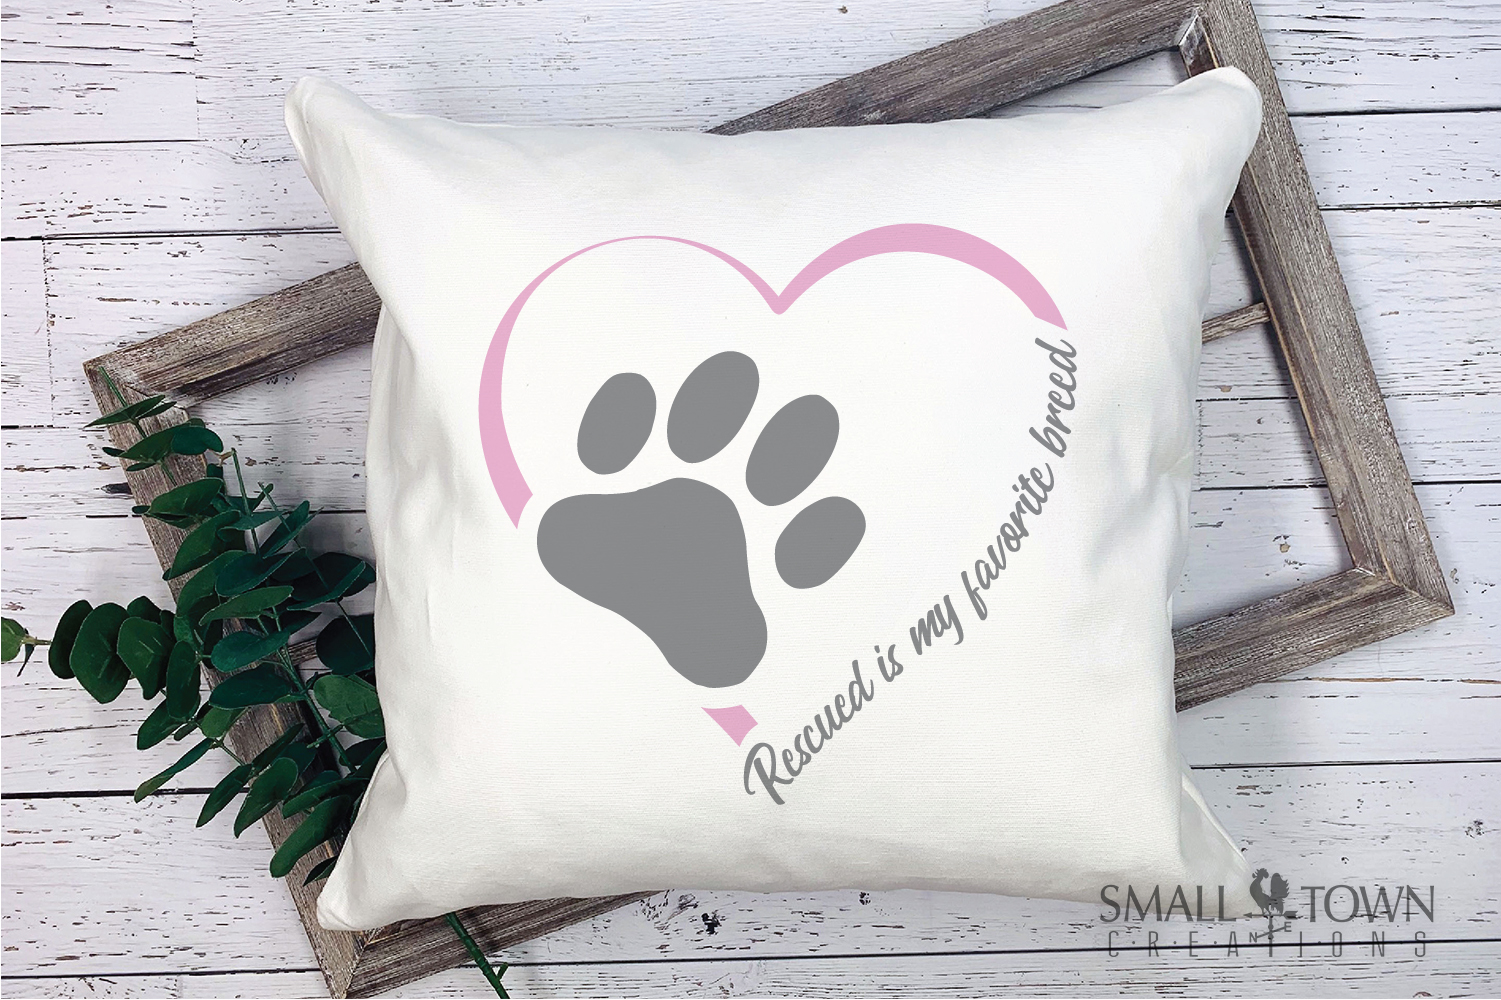 Rescued Cat, Adopted Cat, Cat breed, PRINT, CUT & DESIGN example image 3